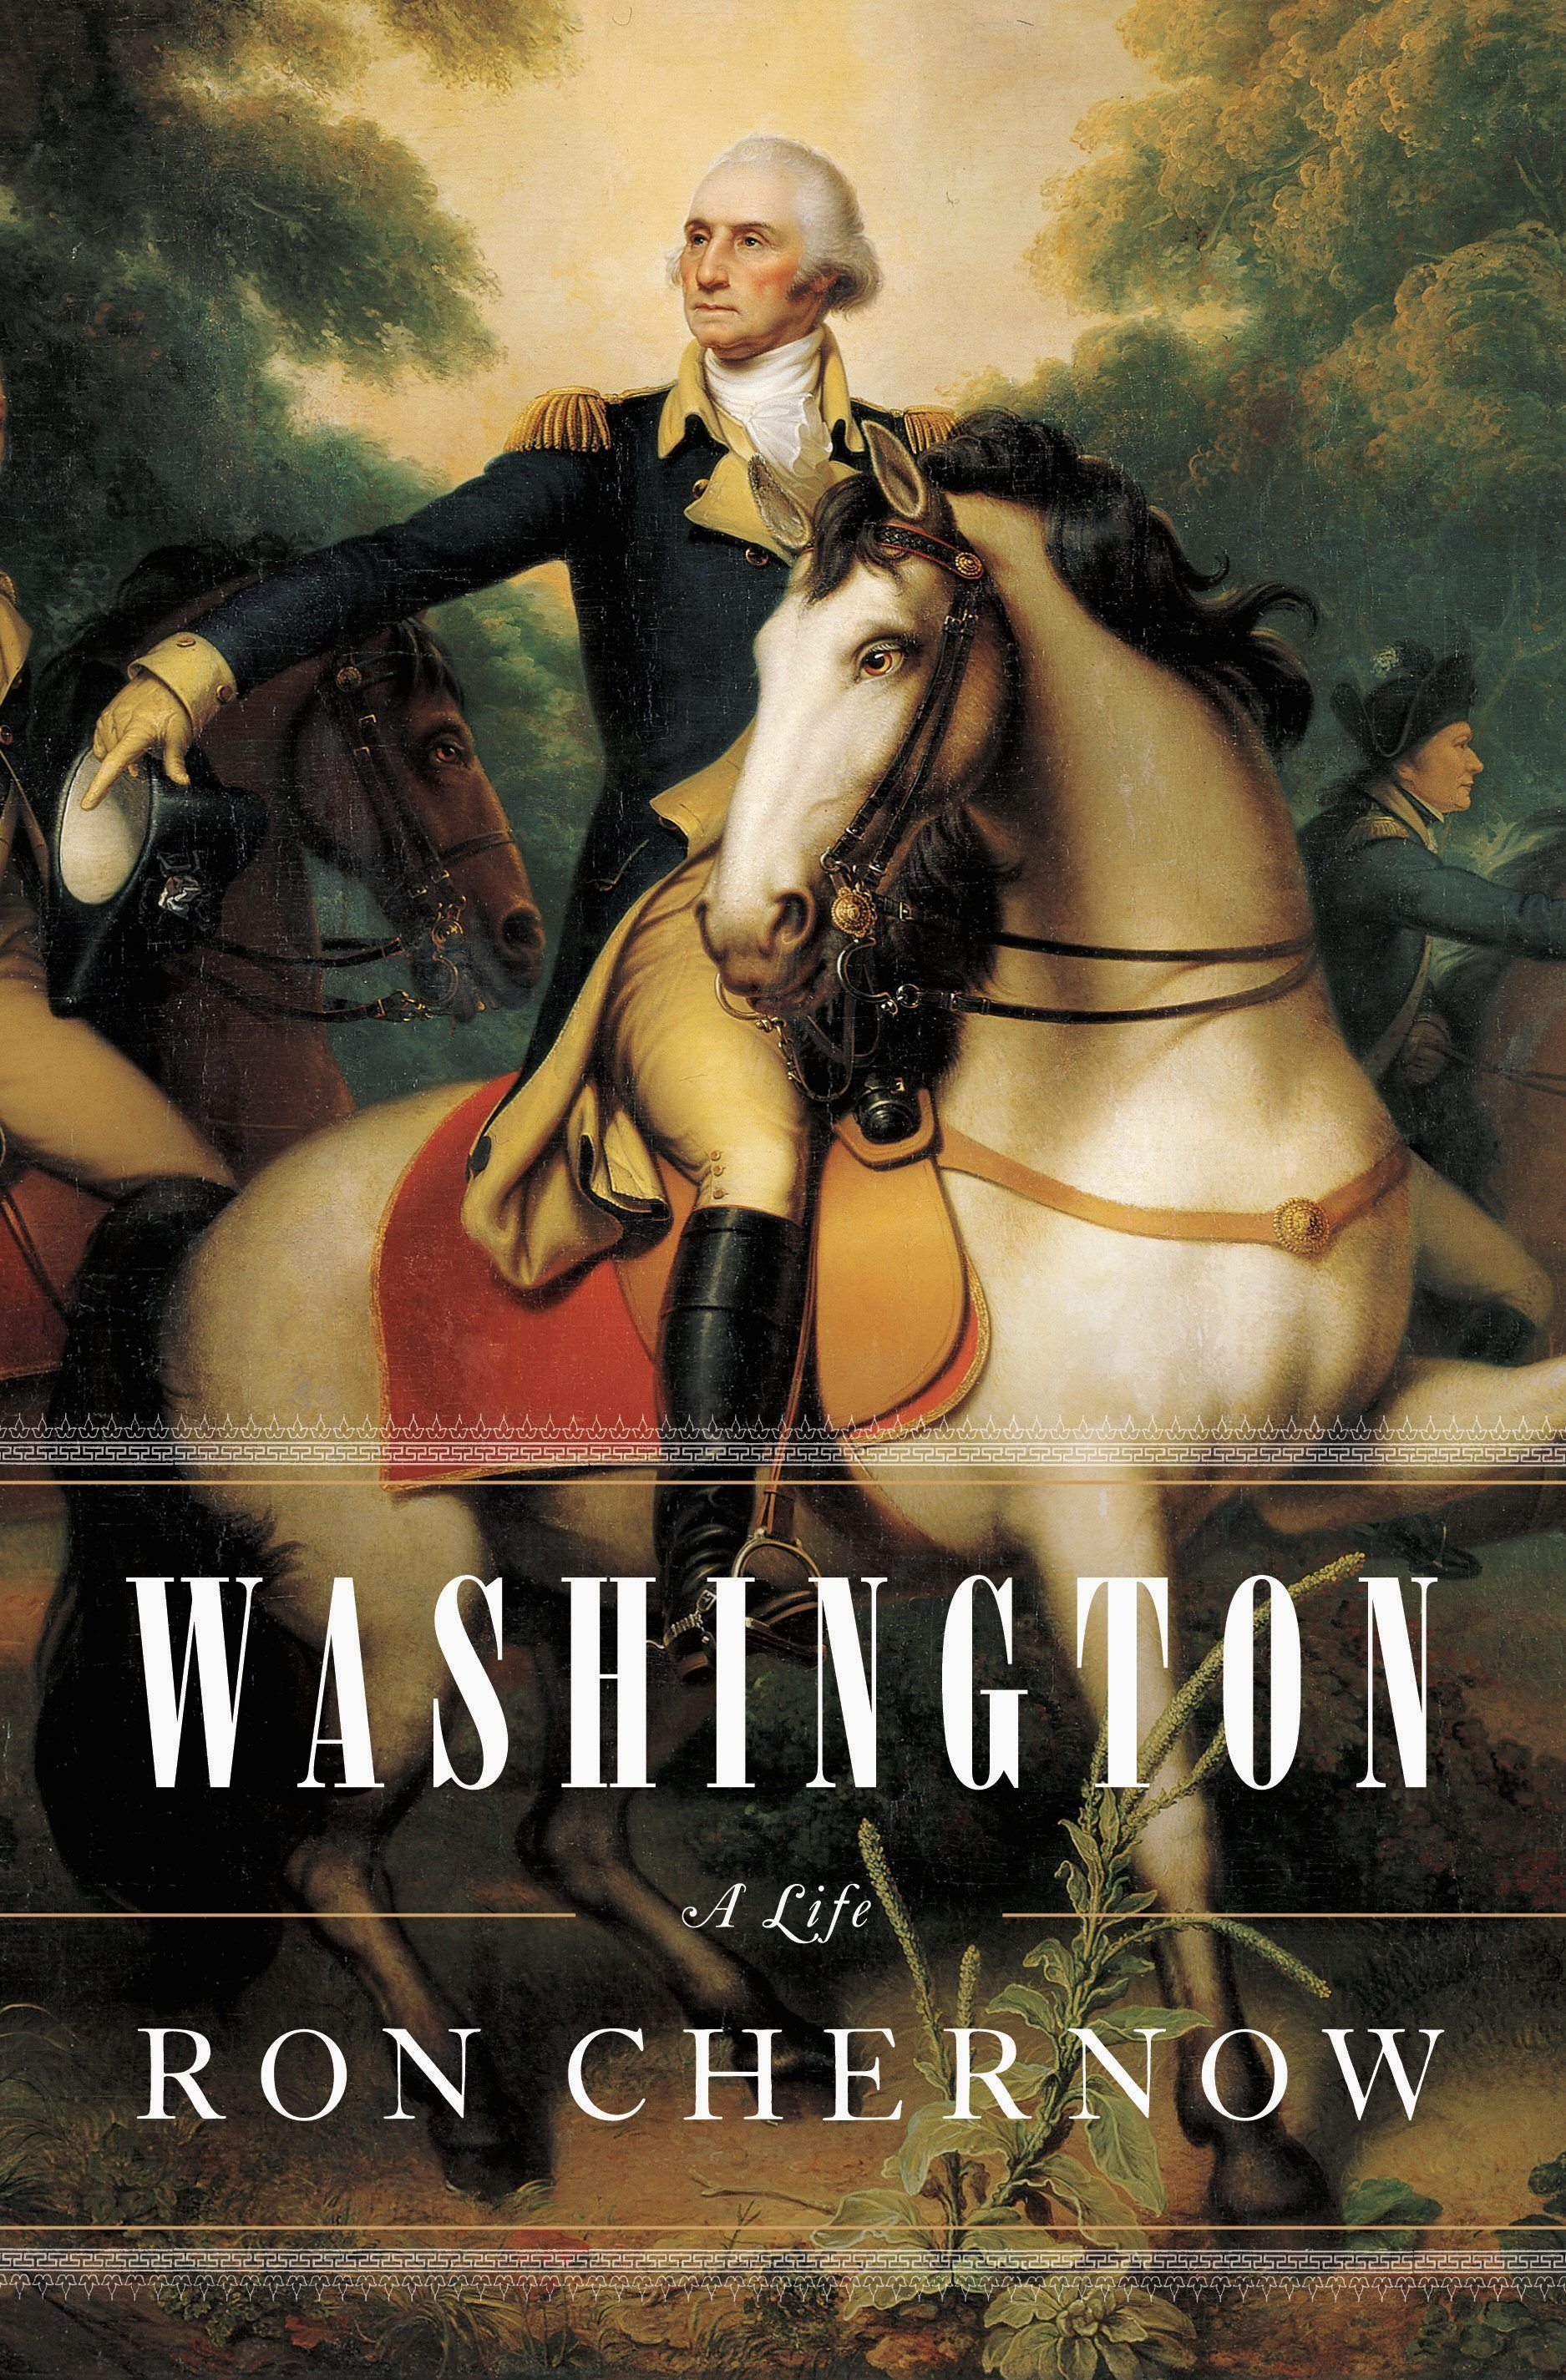 Ron Chernow, Washington: A Life. Click the link below to learn more about this Pulitzer Prize winning biography